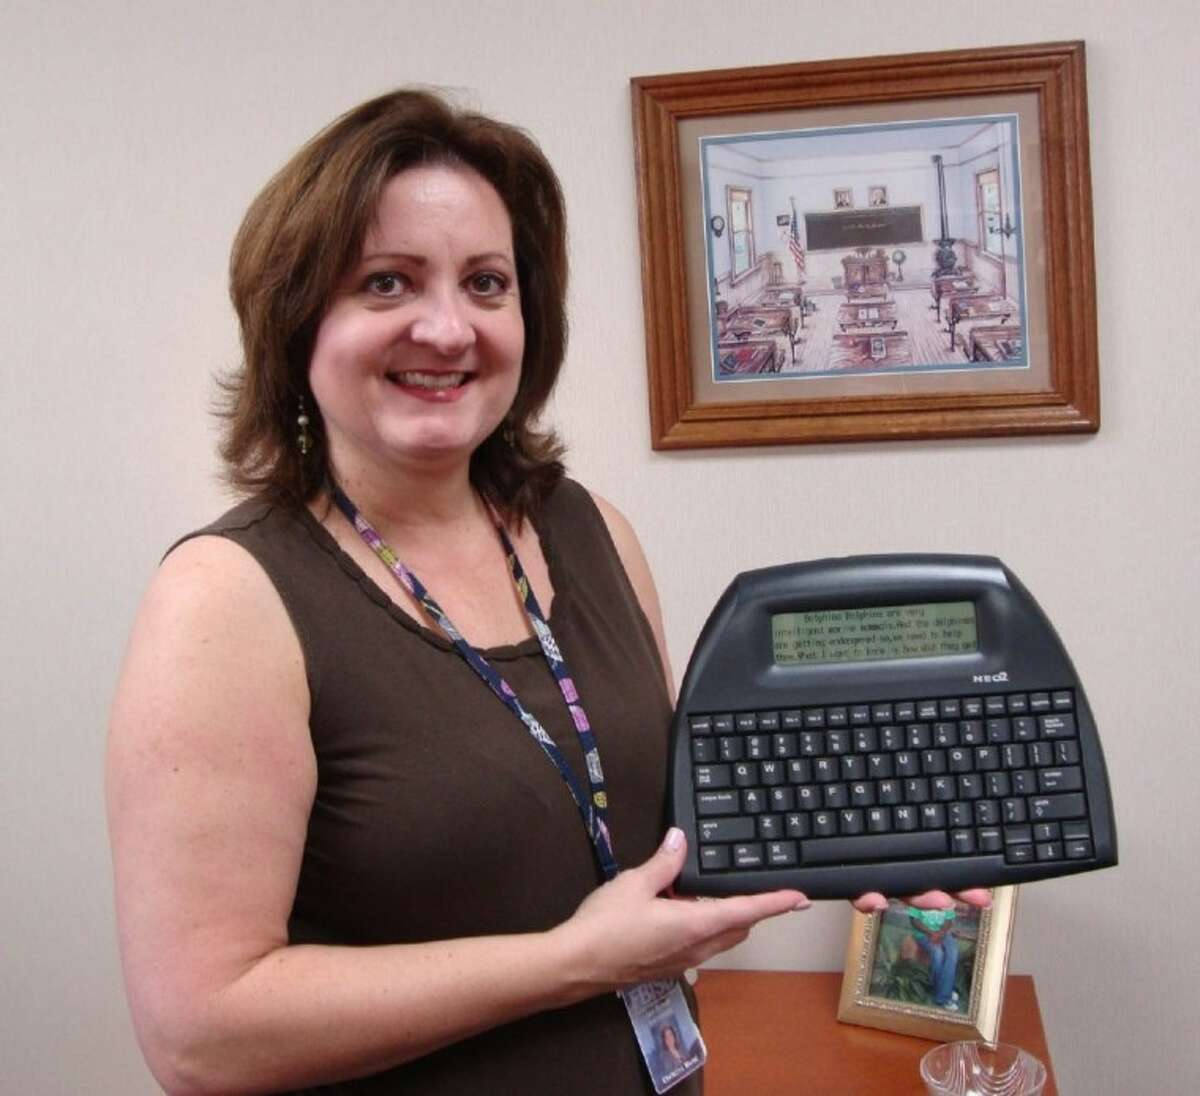 Jan Schiff Elementary first-grade teacher Christina Murat presents one of the NEO 2 wireless keyboards now used by students at the school. The school is the first in Fort Bend ISD to use the teaching technology.